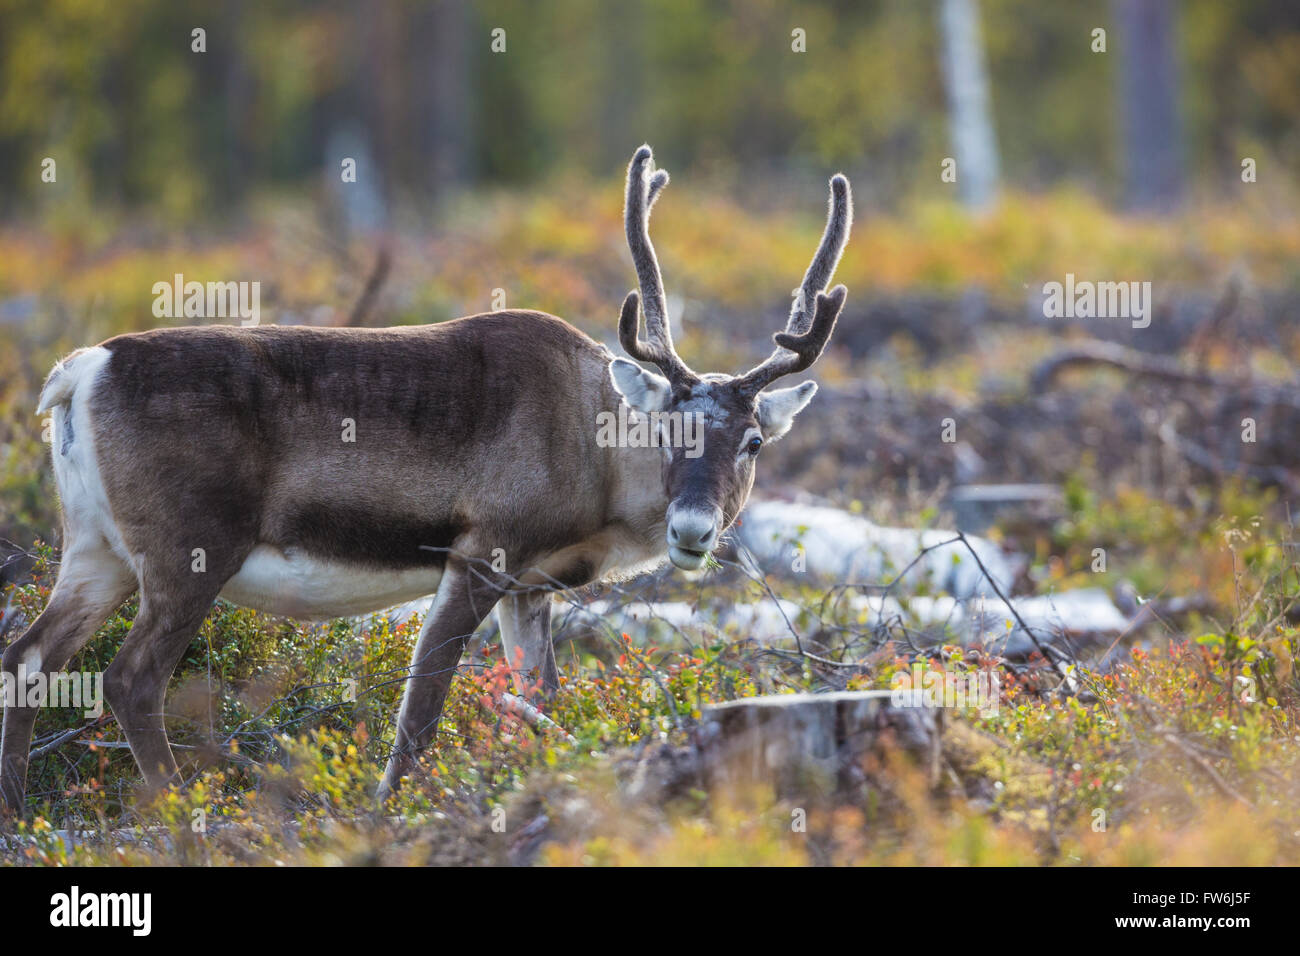 Reindeer looking in to the camera, standing in blue berry bushes in autumn season and autumn colors is seen, Gällivare, - Stock Image